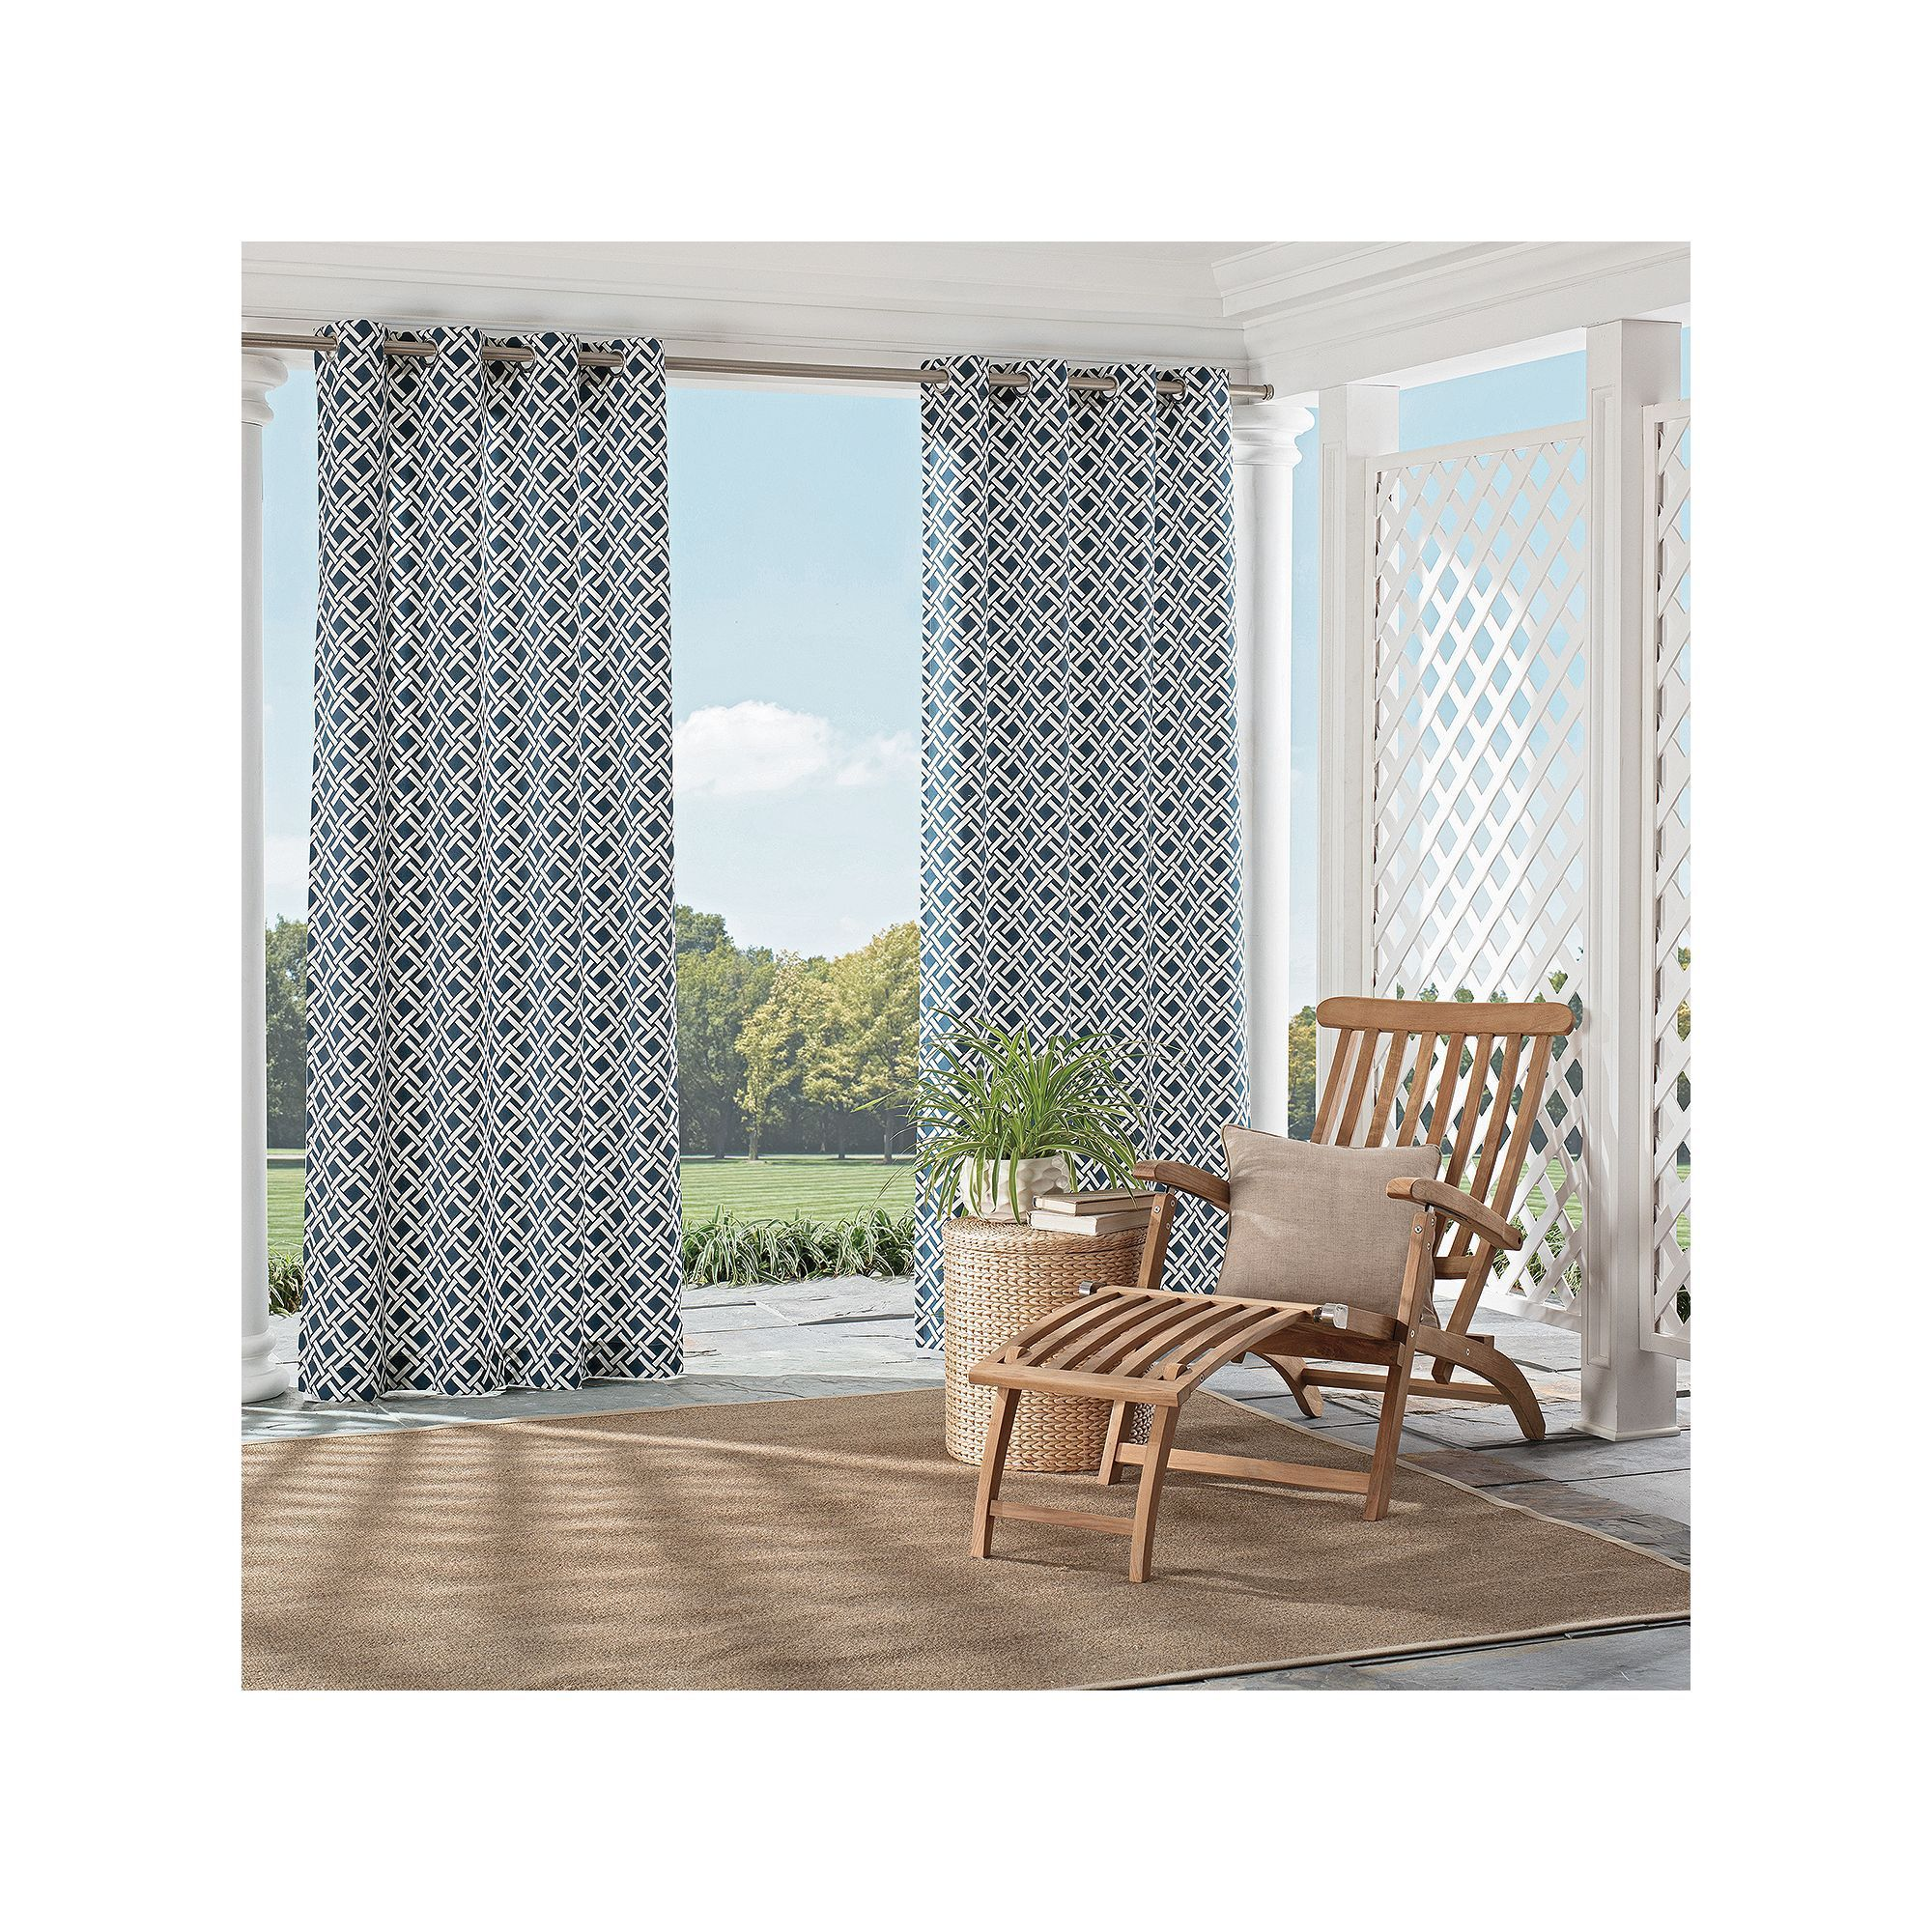 Parasol st kitts indoor outdoor curtain blue blue products and